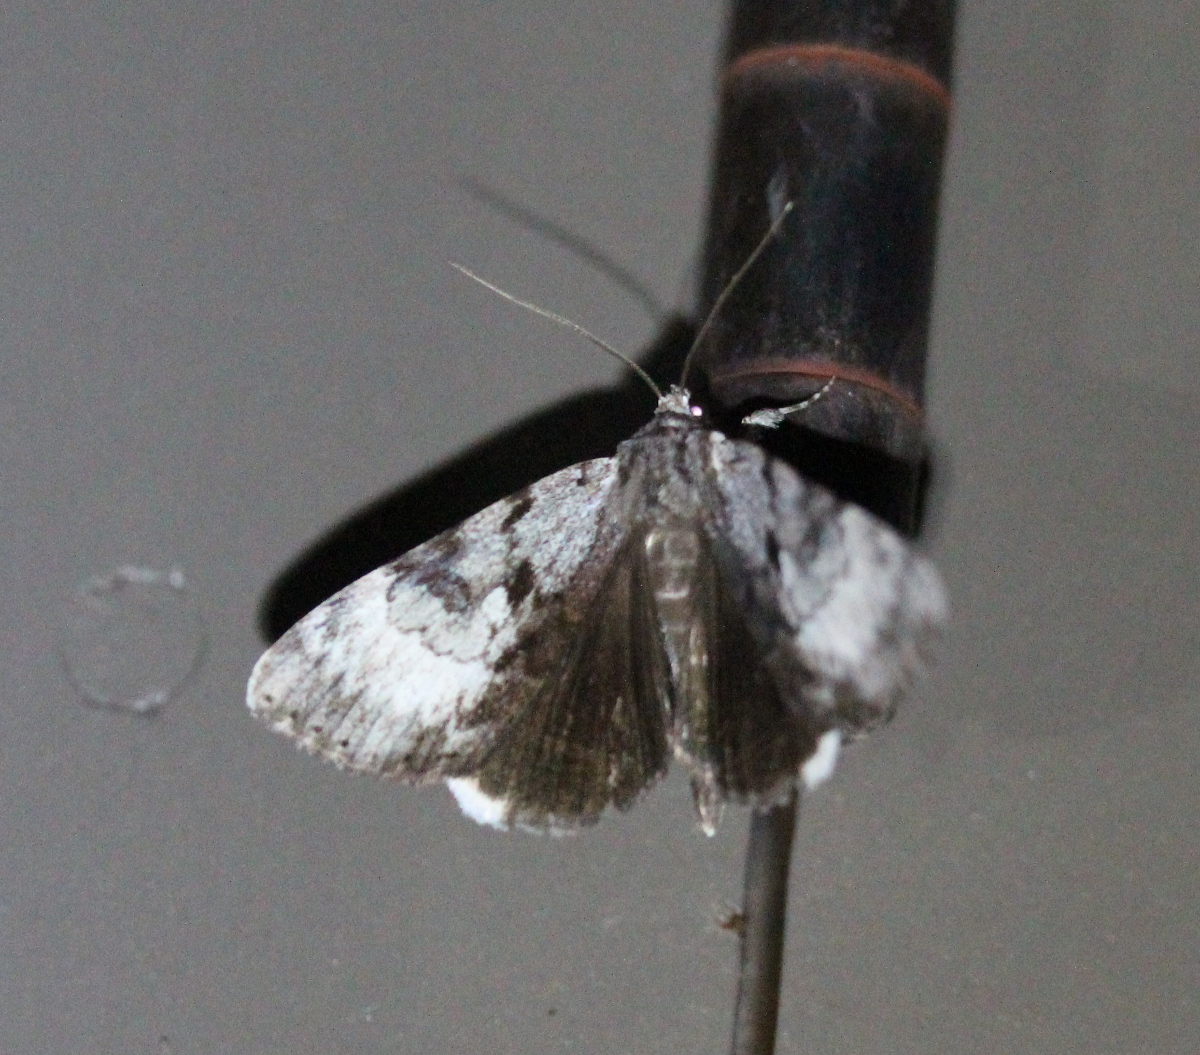 grey moth fluttering with wings open showing black hindwings